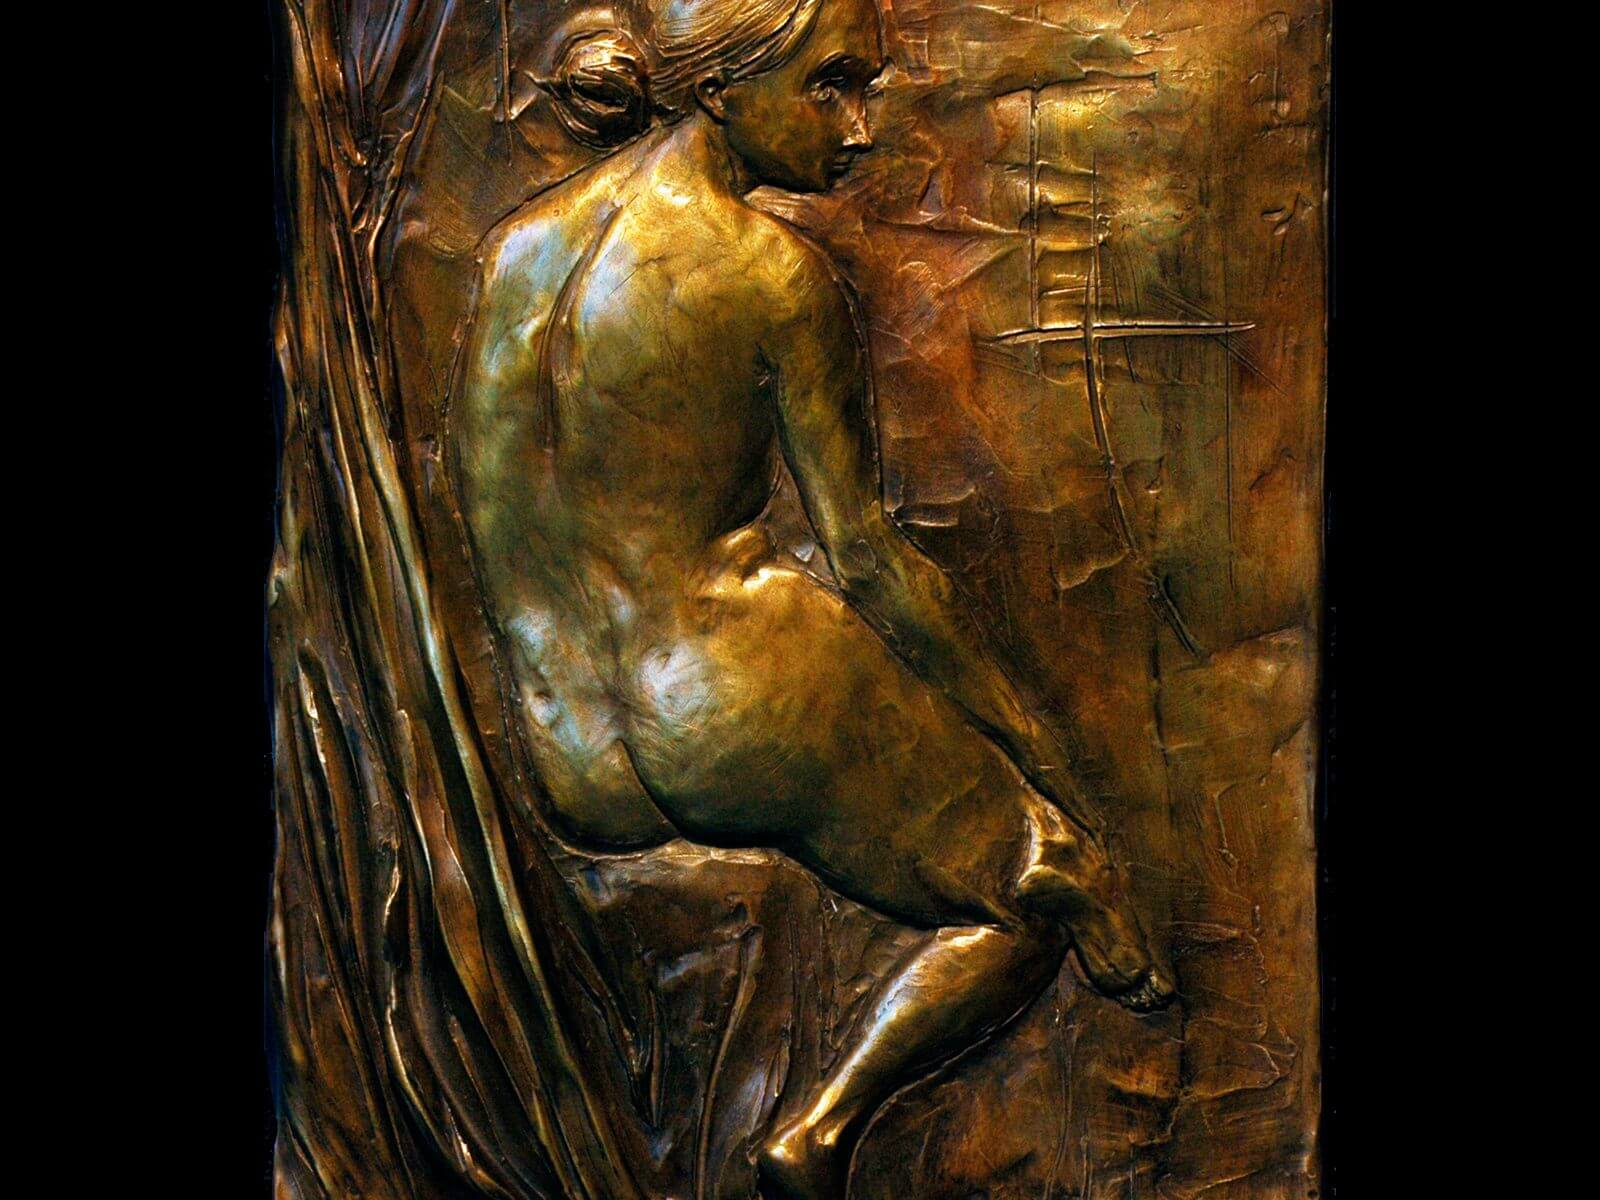 Diana a bronze figurative relief wall sculpture by Andrew DeVries